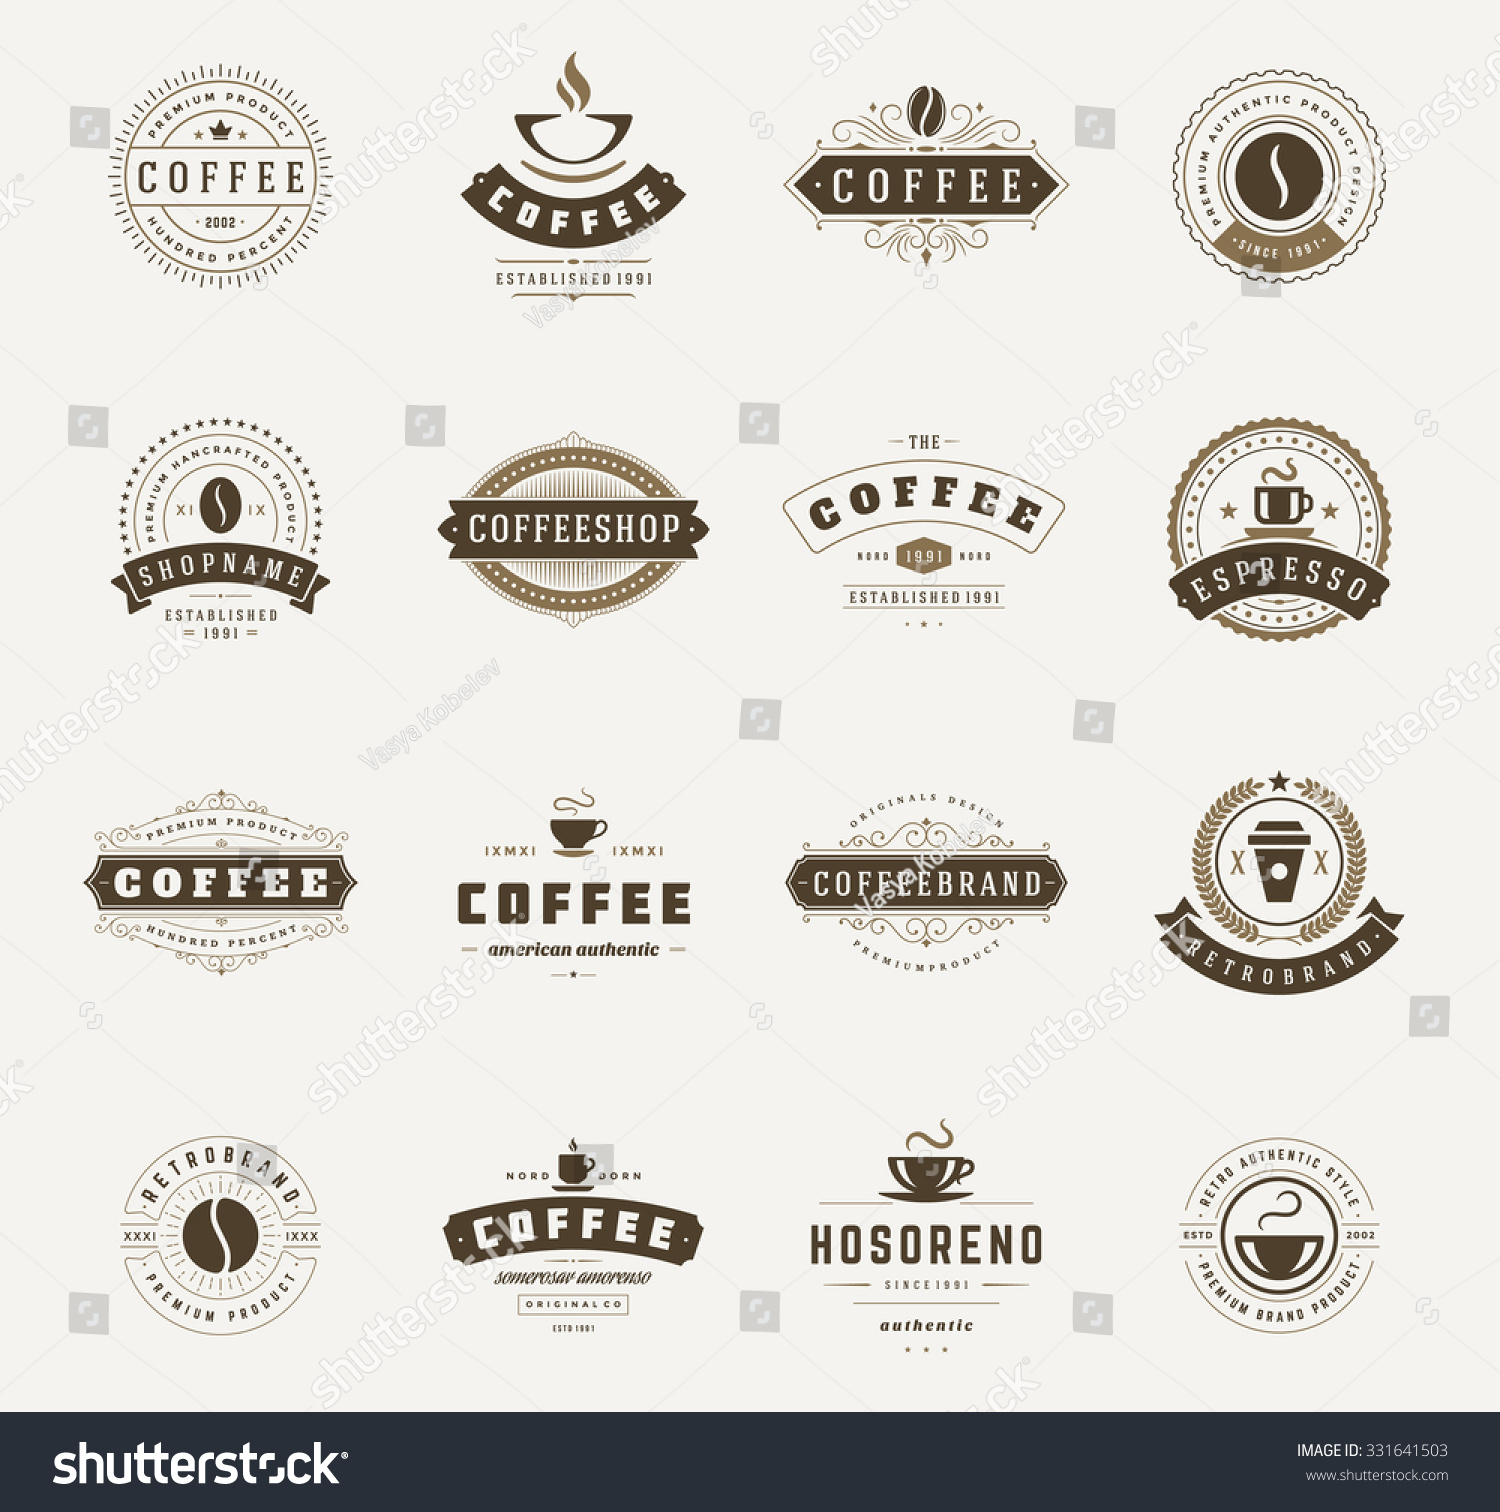 Art logo logo s coffee logo coffee shop coffee design shop logo coffee - Coffee Shop Logos Badges And Labels Design Elements Set Cup Beans Cafe